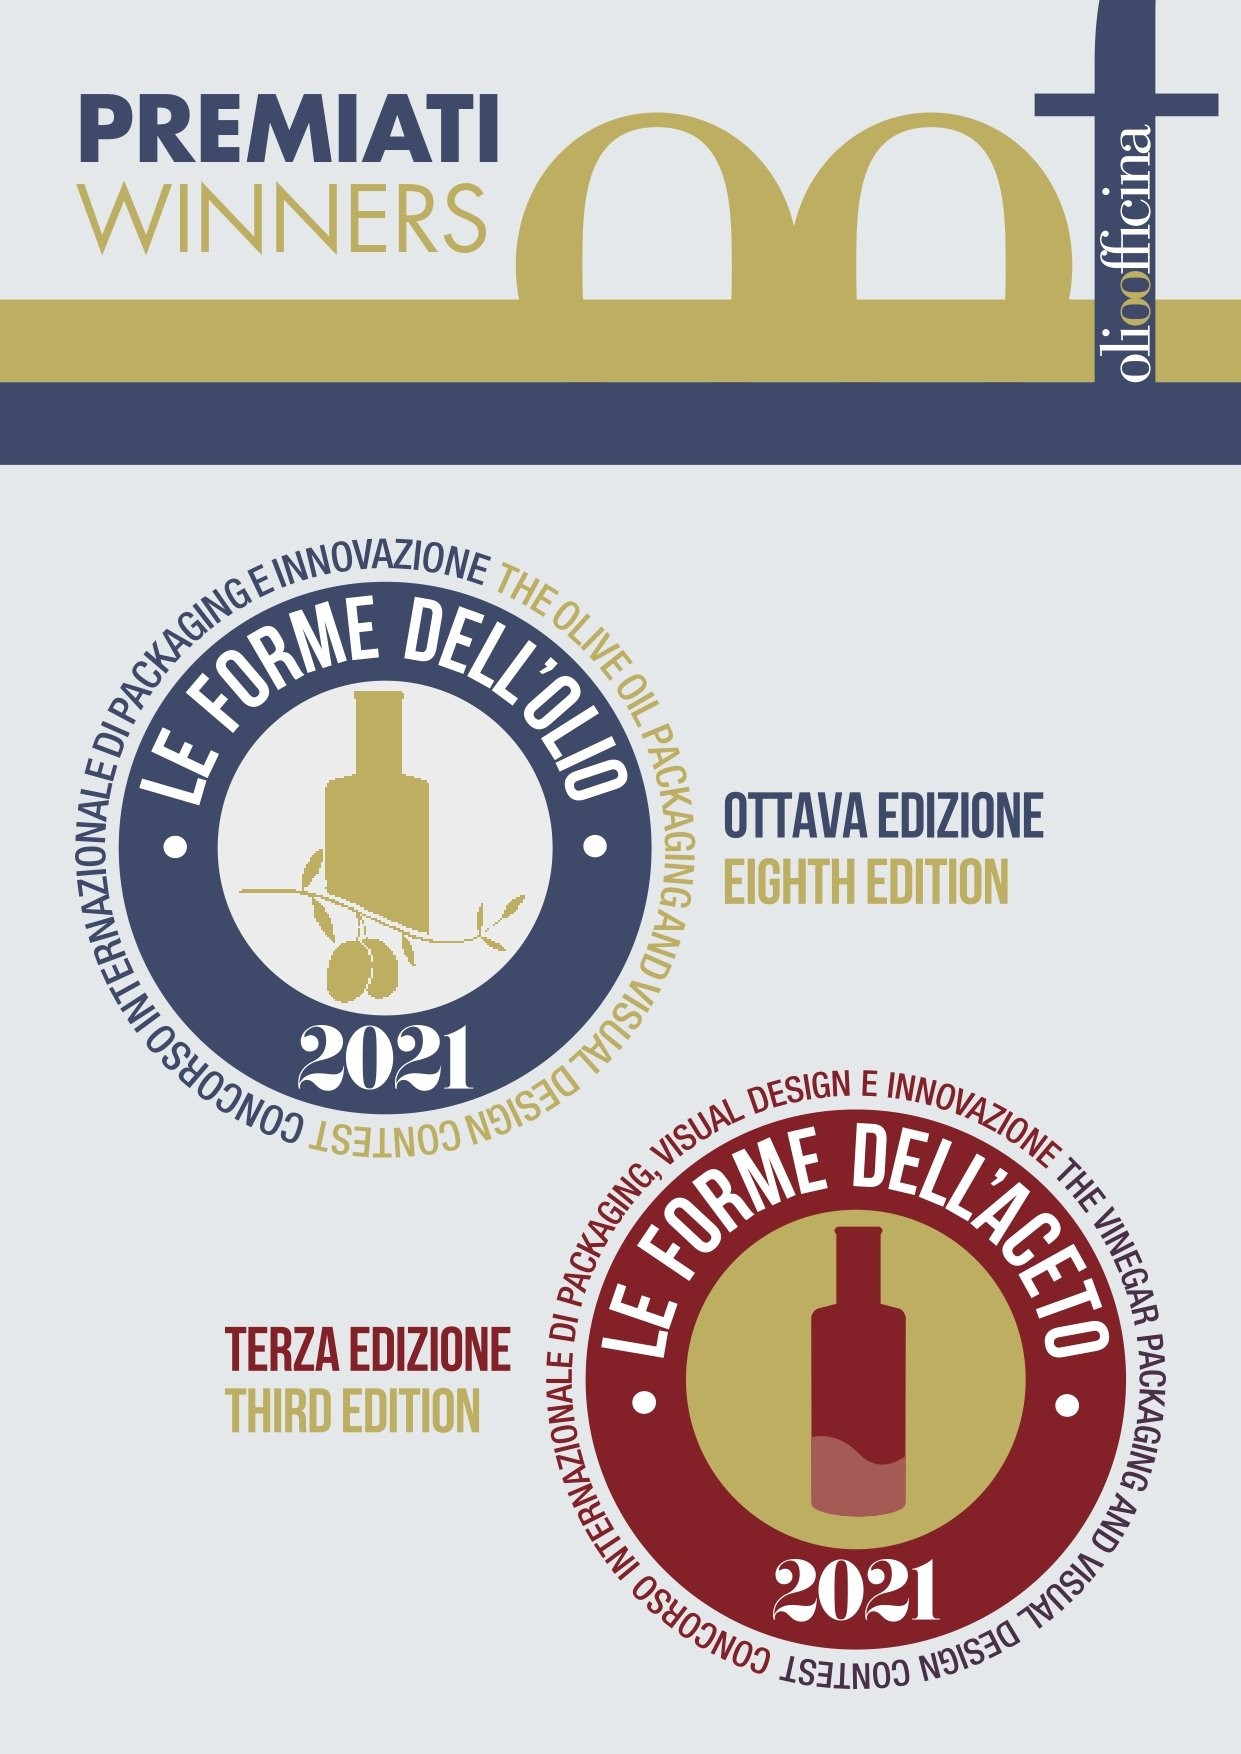 Here are the winners of the 2021 Le Forme dell'Olio Award